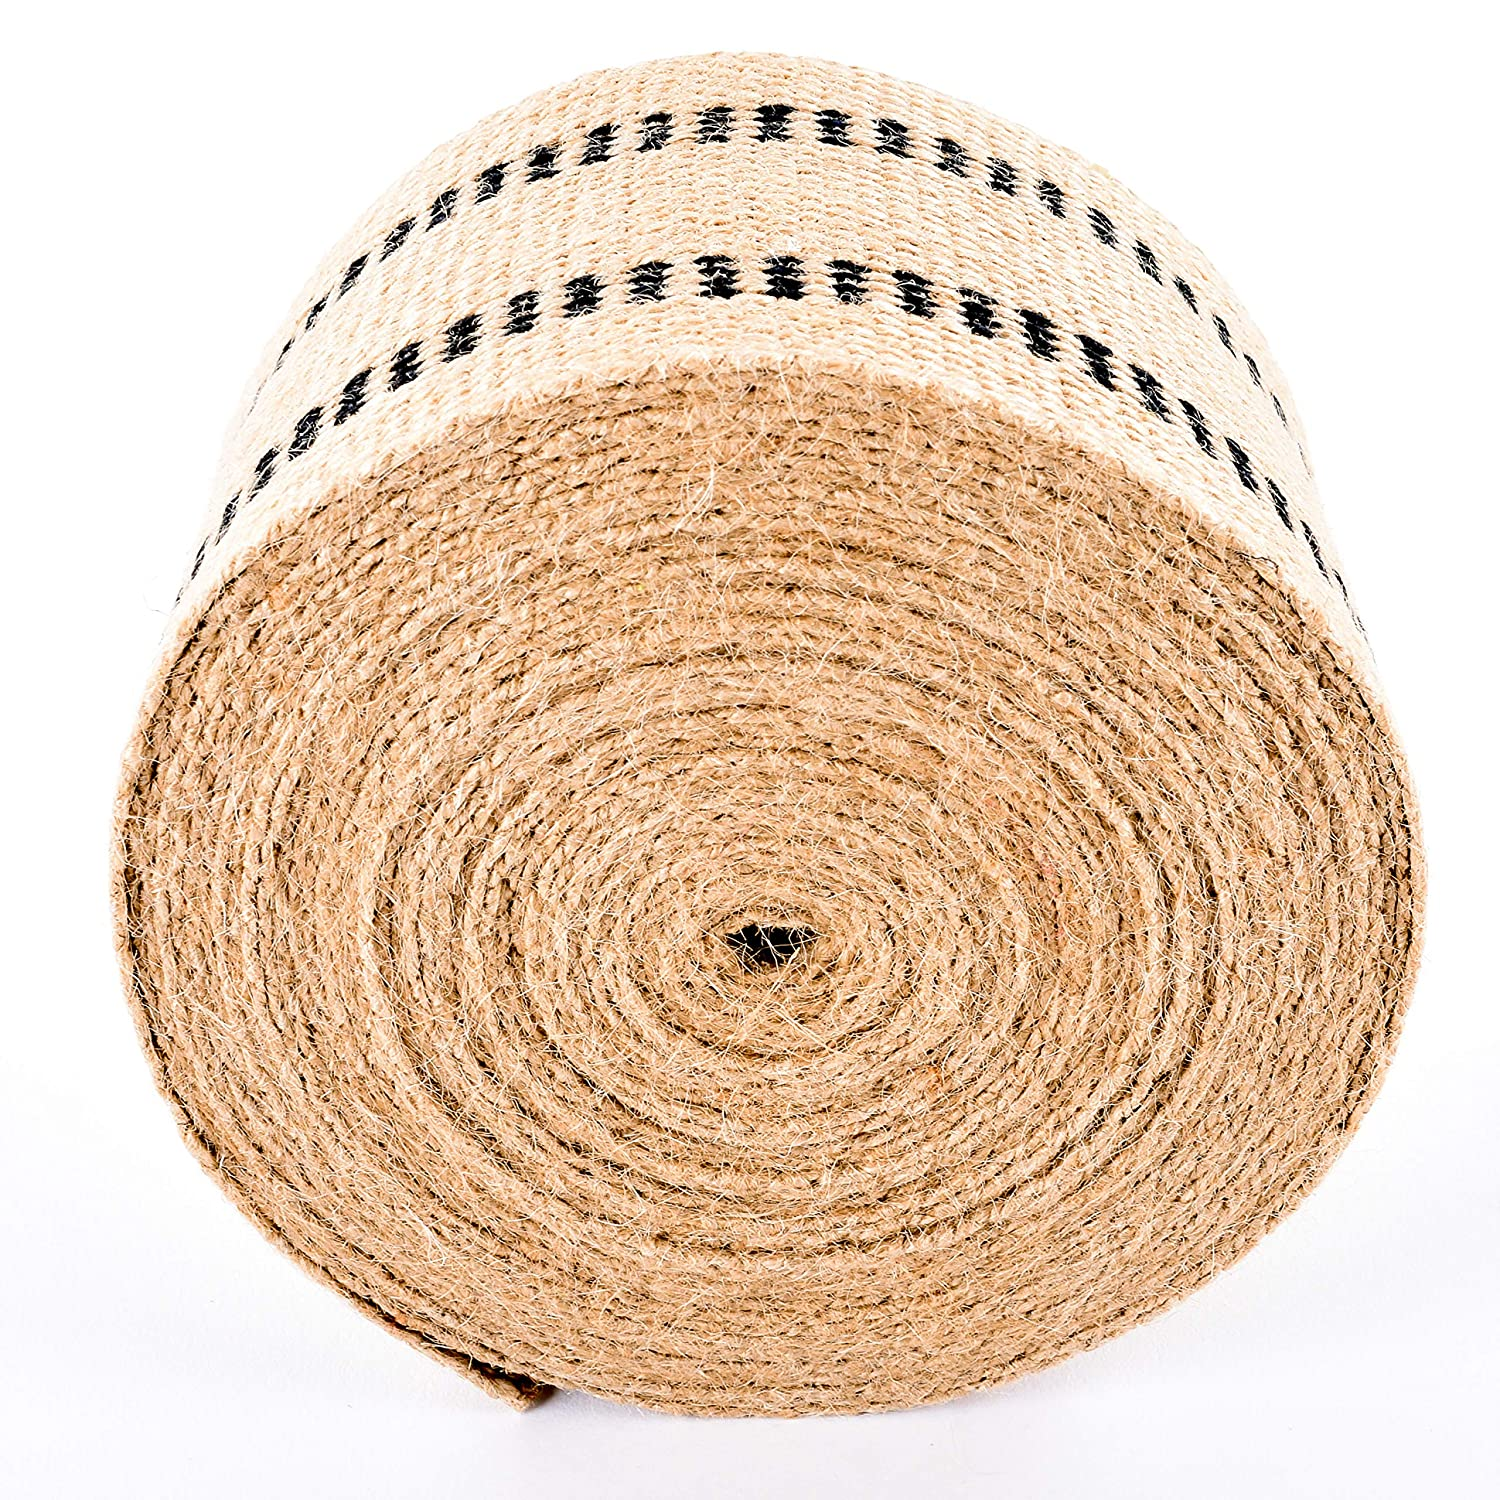 Upholstery//Craft Jute Webbing Burlap 3.5 Inches X 10 Yards-Natural W//Black Stripes